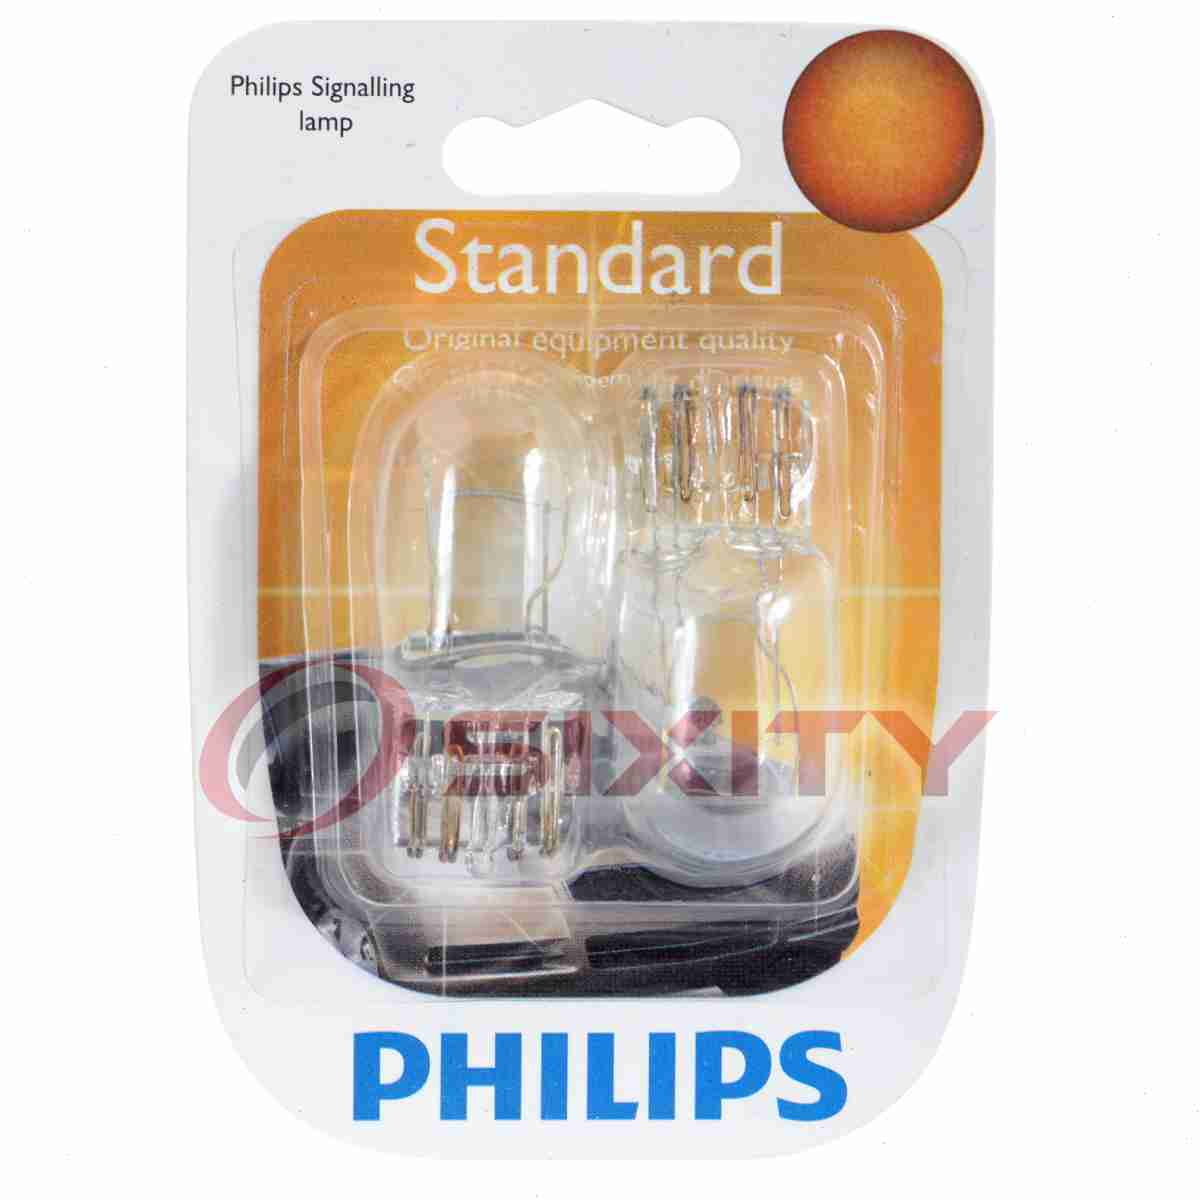 Chevrolet Malibu 2014 For Sale: Philips Outer Tail Light Bulb For Chevrolet Malibu Impala